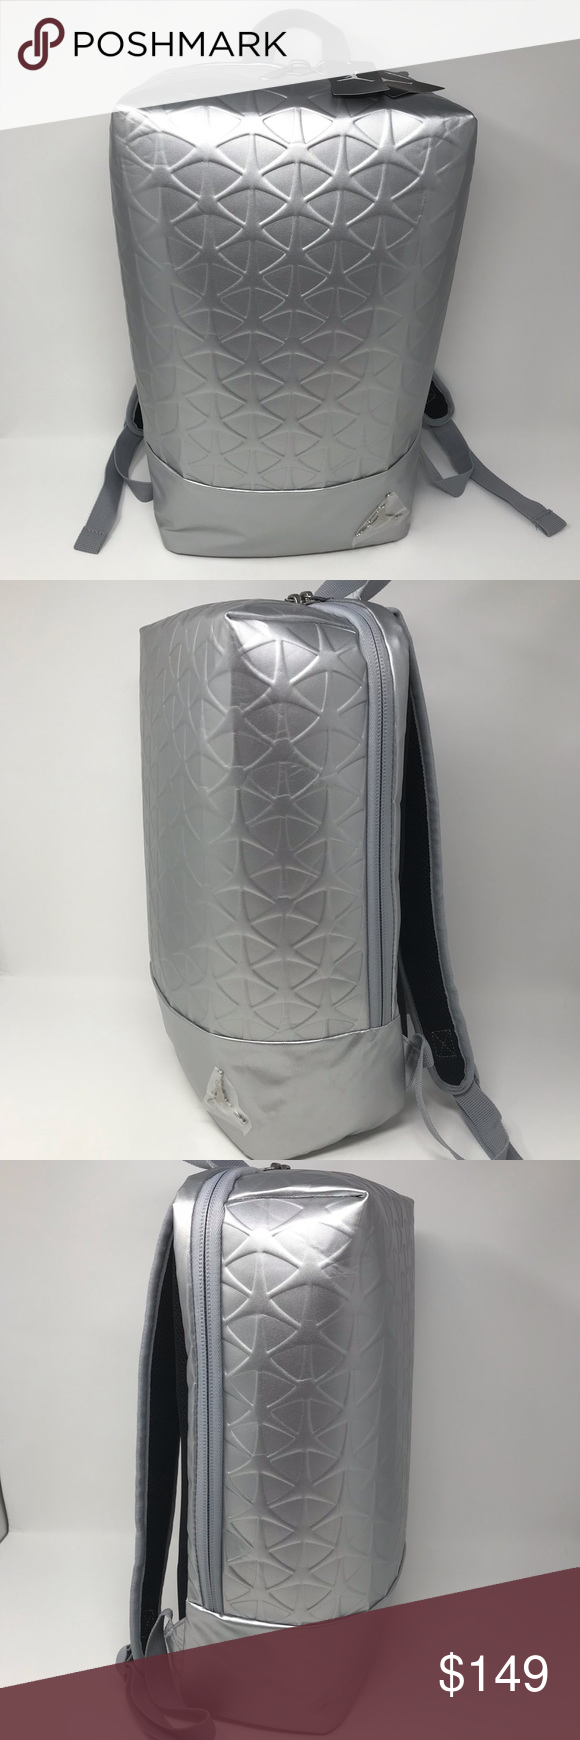 Nike Air Jordan Flight Flex Backpack Silver